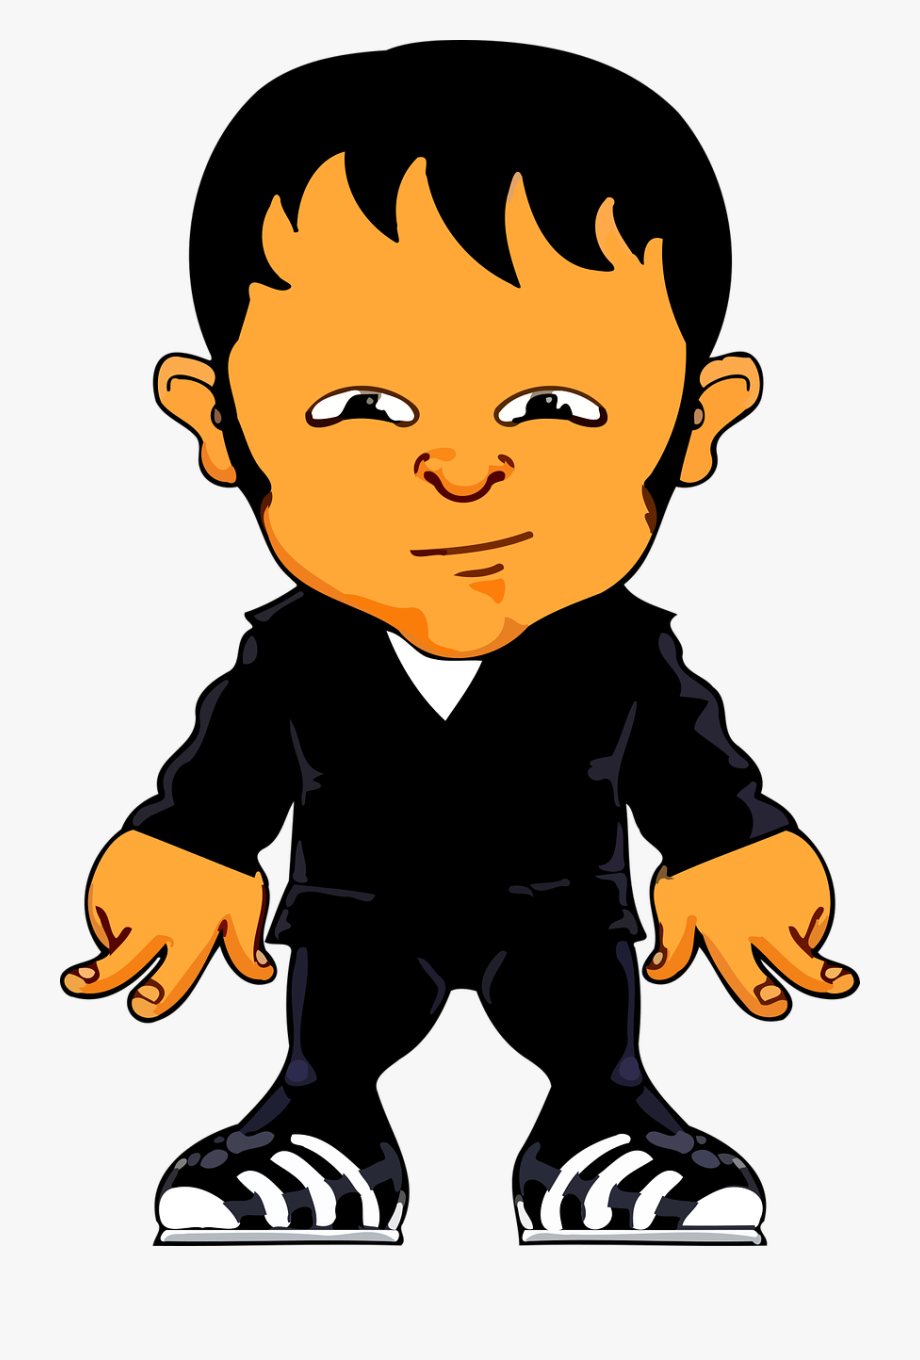 Amusing Avatar Cartoon Png Image Clipart , Png Download.